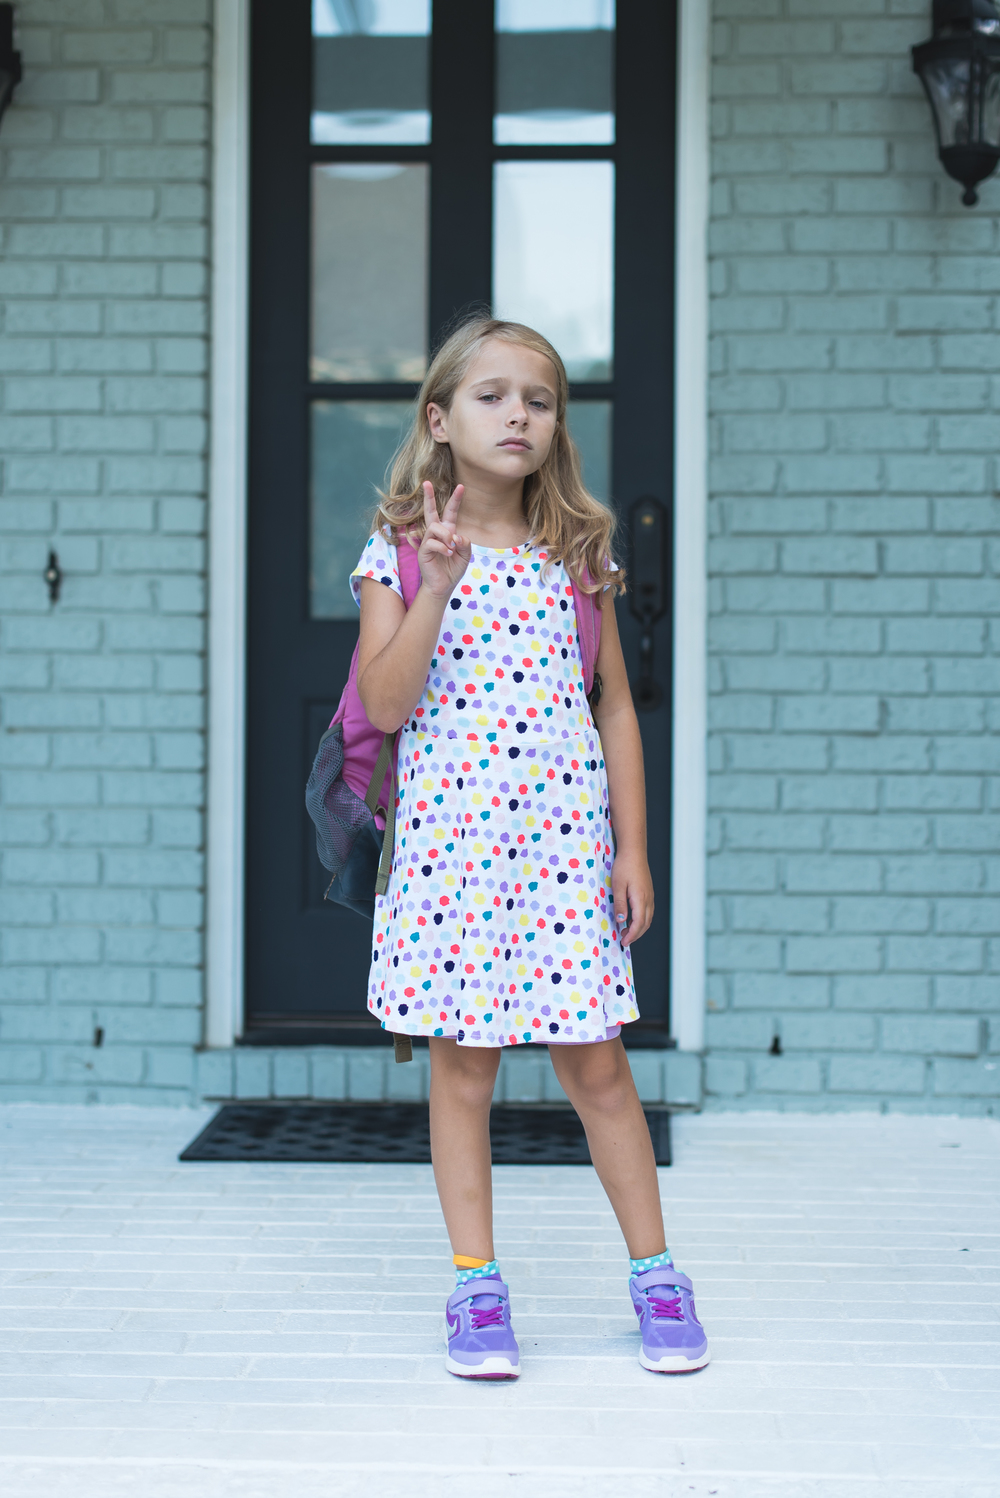 firstdaysofschool-4.jpg